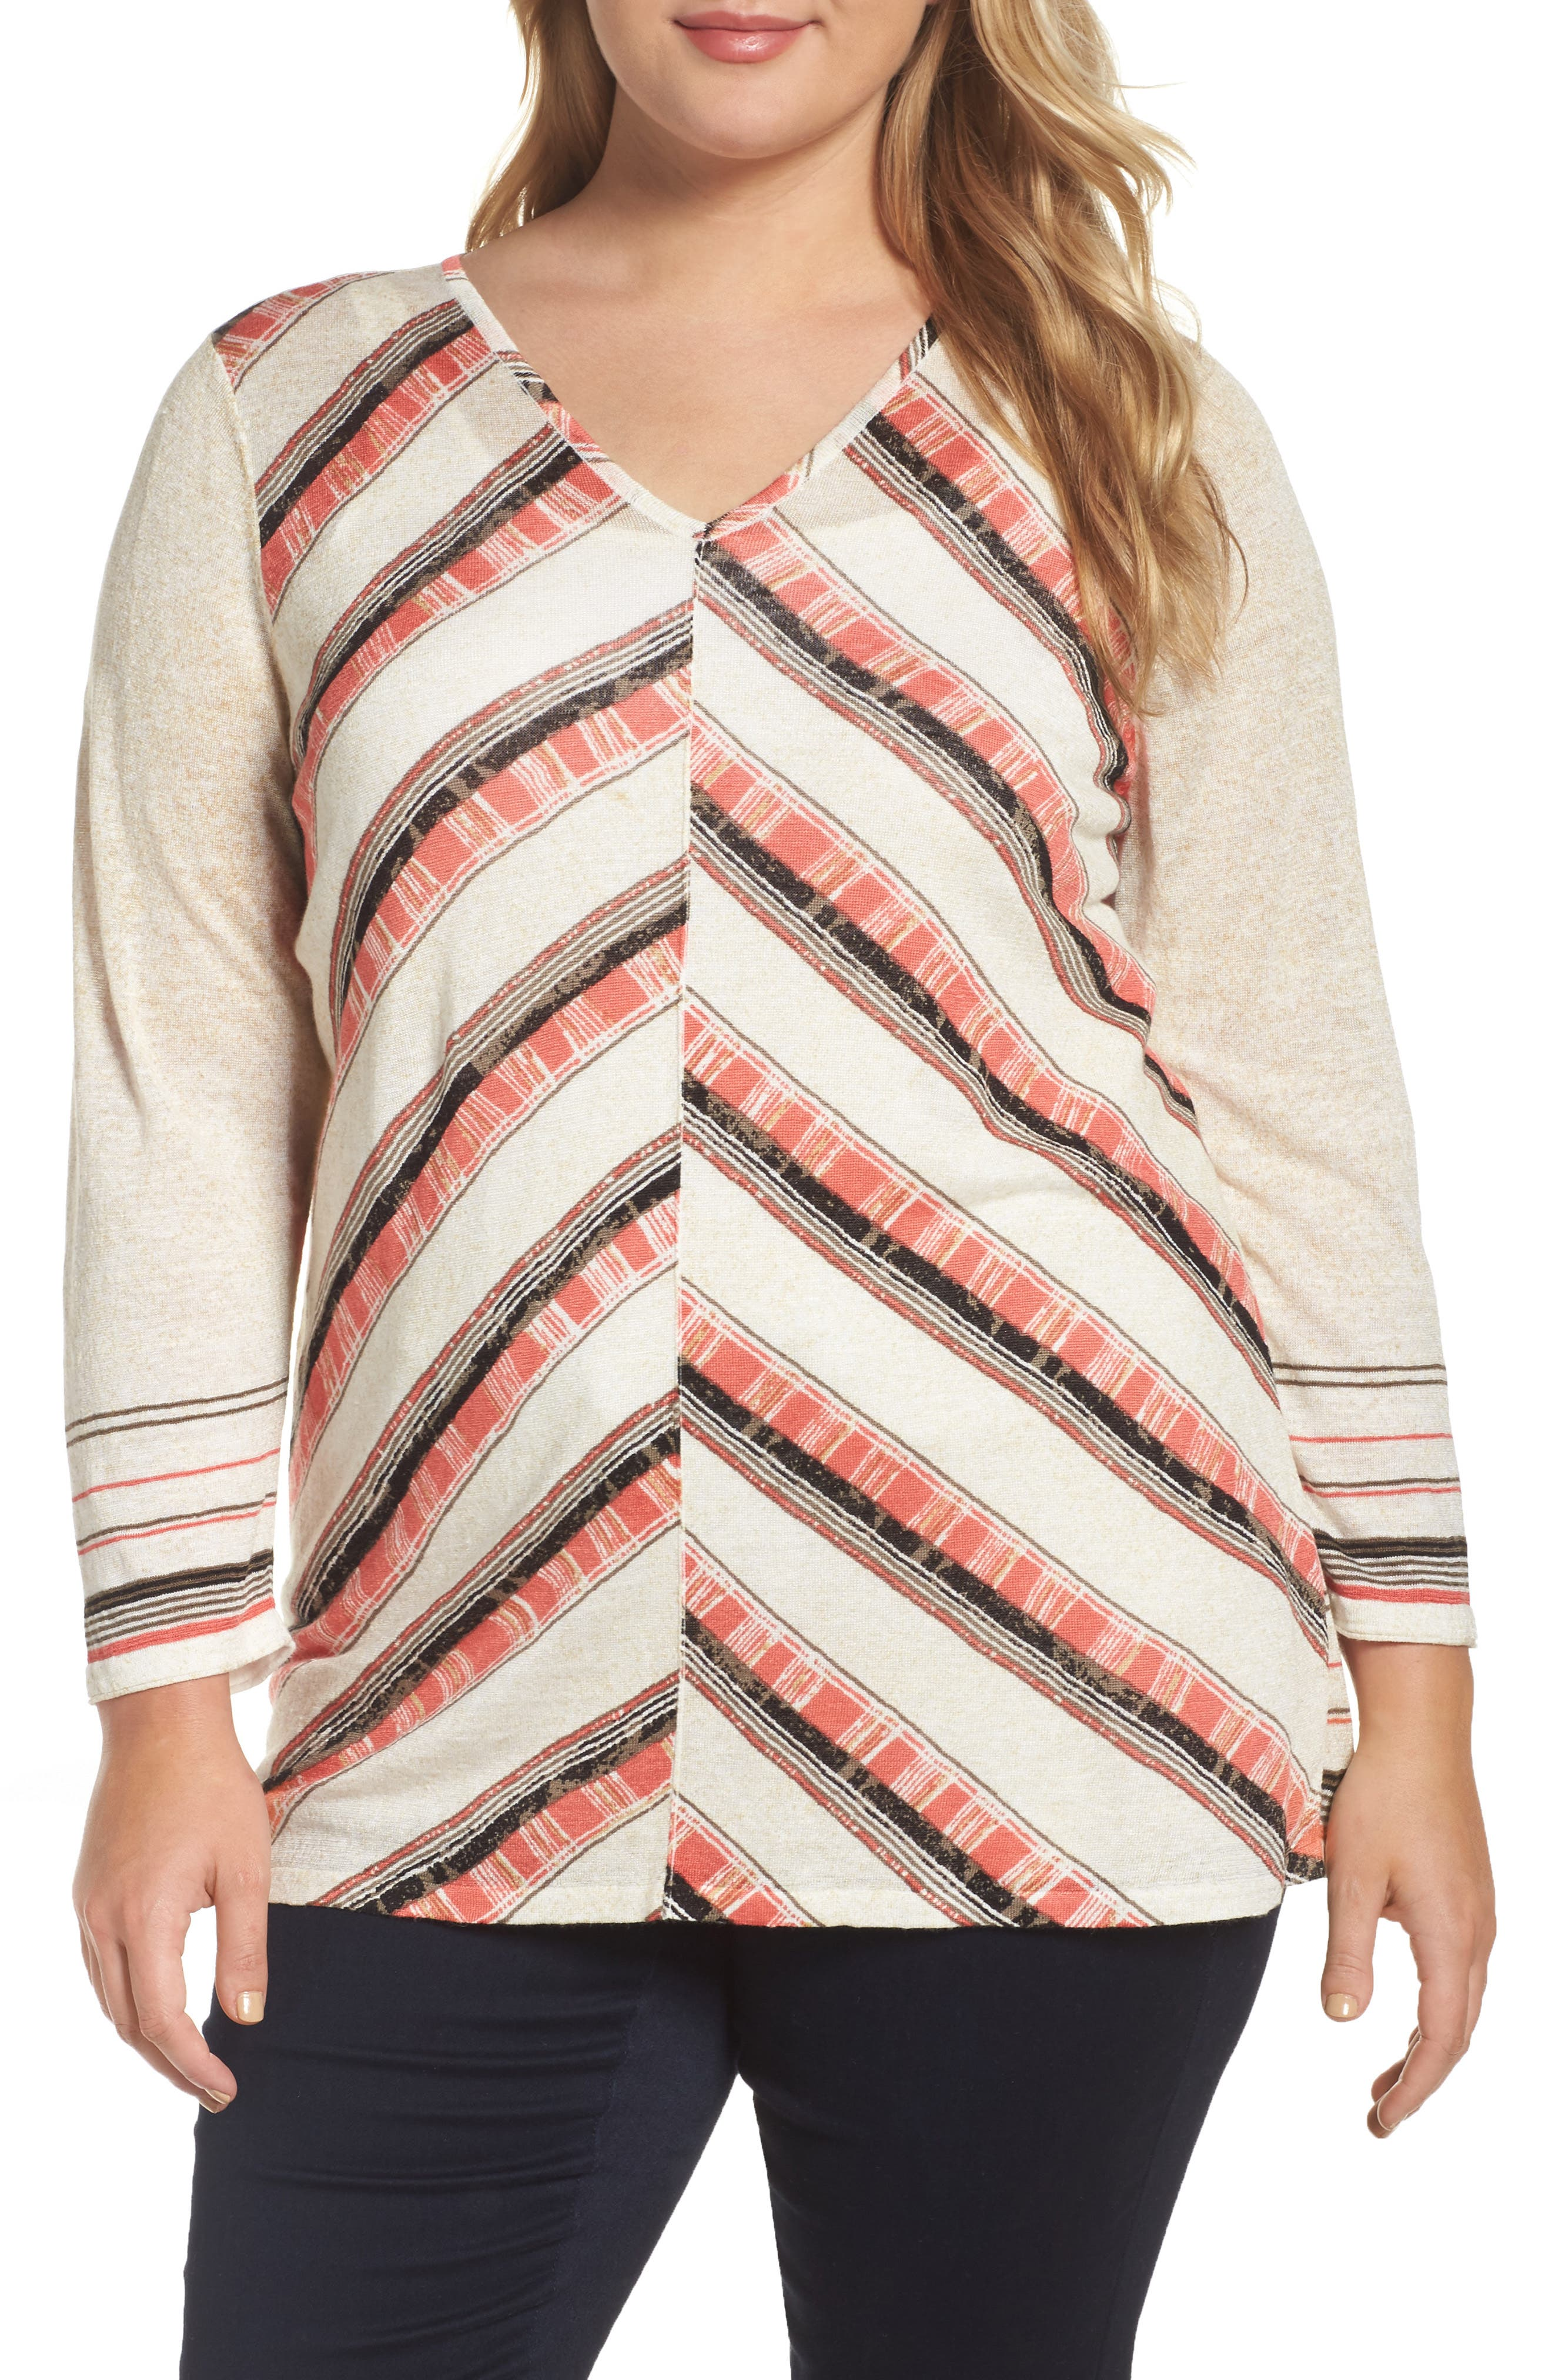 NIC + ZOE Firecracker Linen Blend Top (Plus Size)